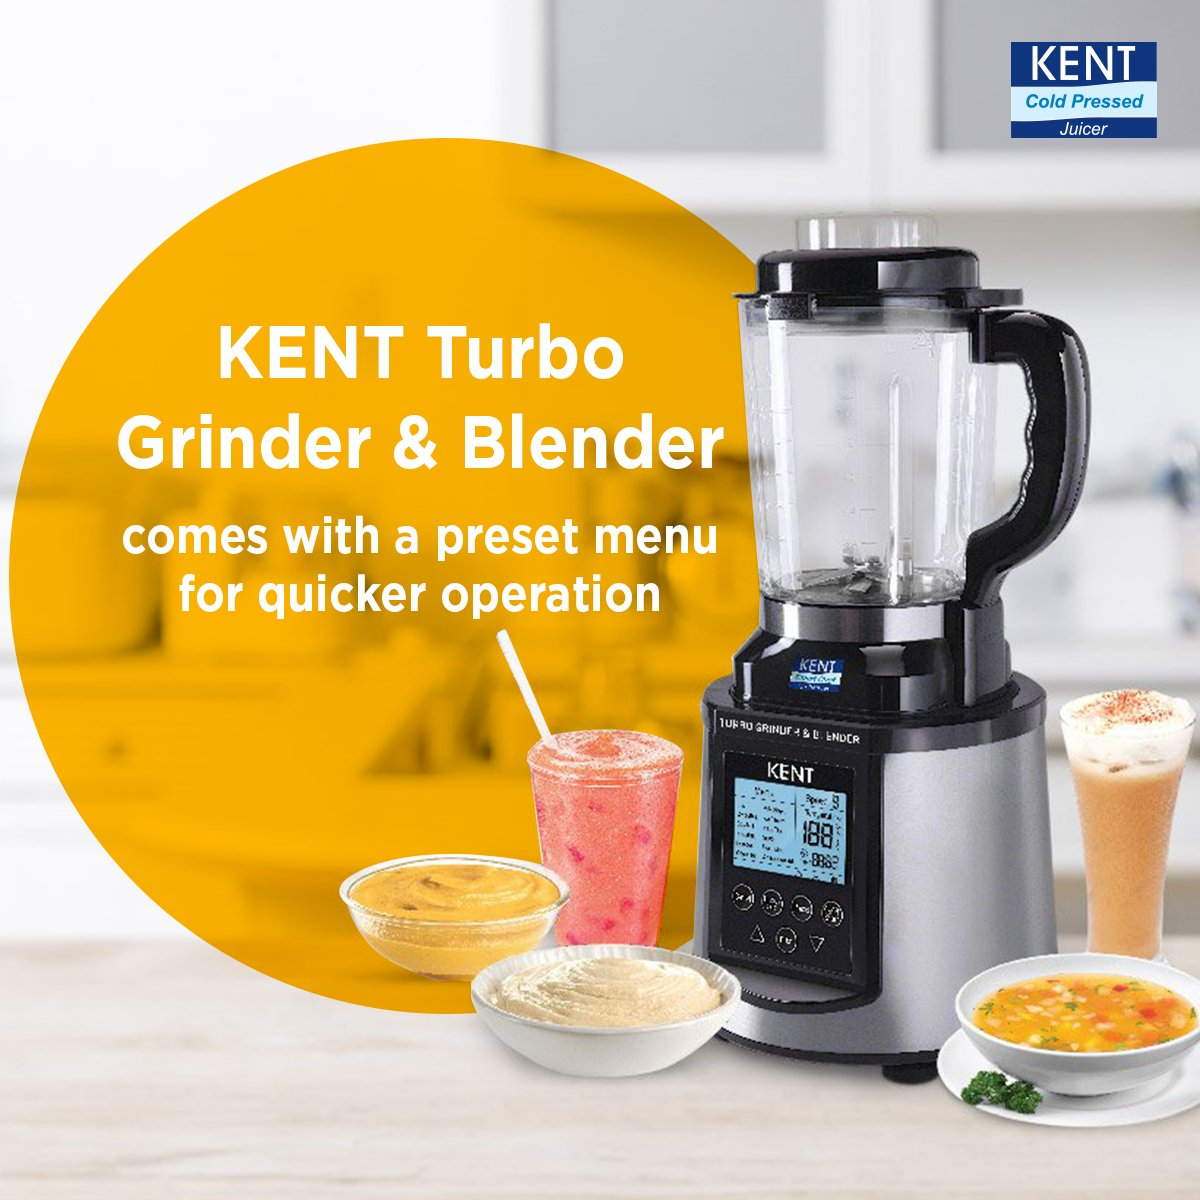 Aqua Kent Turbo Grinder and Blender